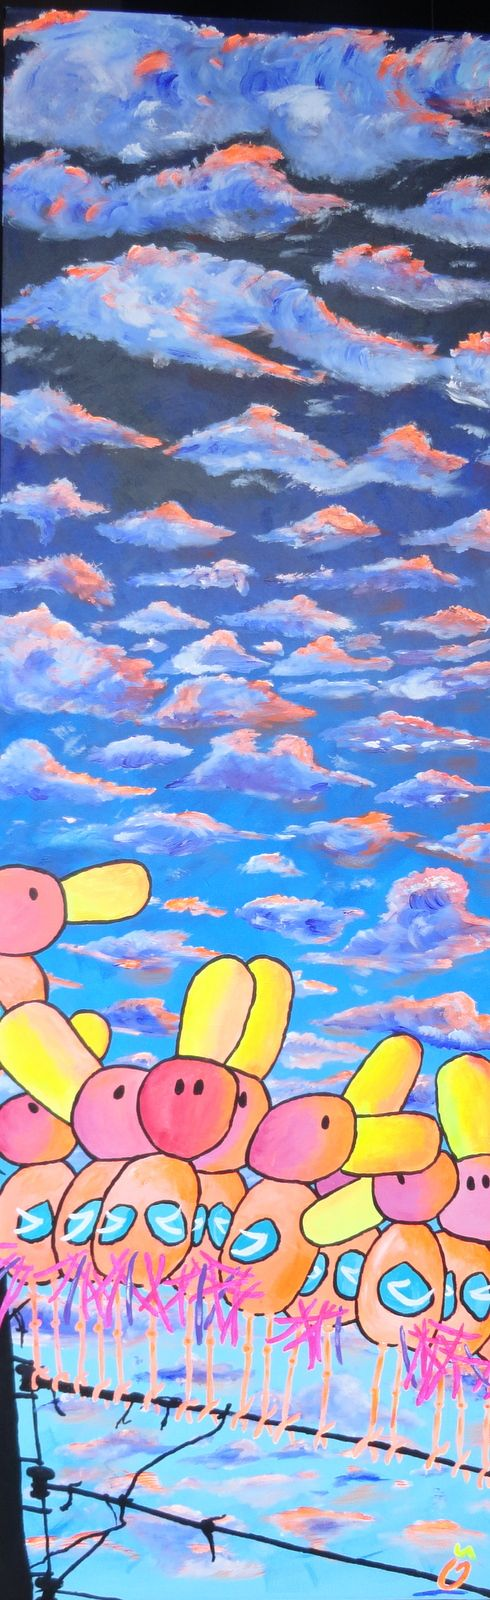 """COLORFUL CLOUD SPECTACLE"". 39.4 – 59.1 Inch (100 – 150 cm) 